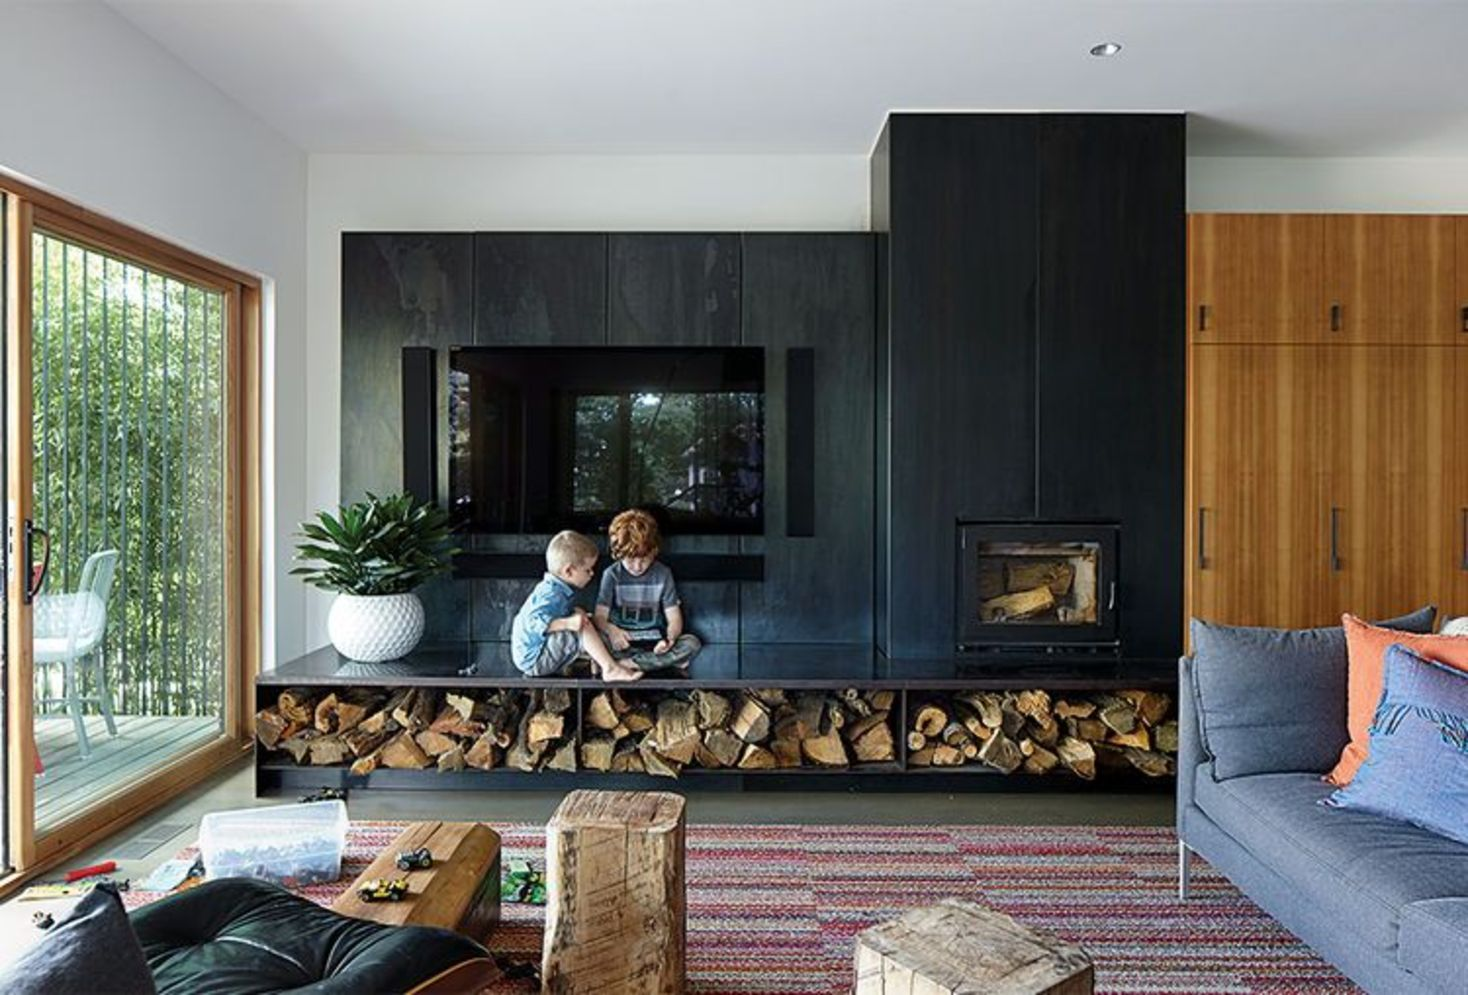 Amazing interior design showing enclosed log burning fireplace along with savvy TV wall Image 4